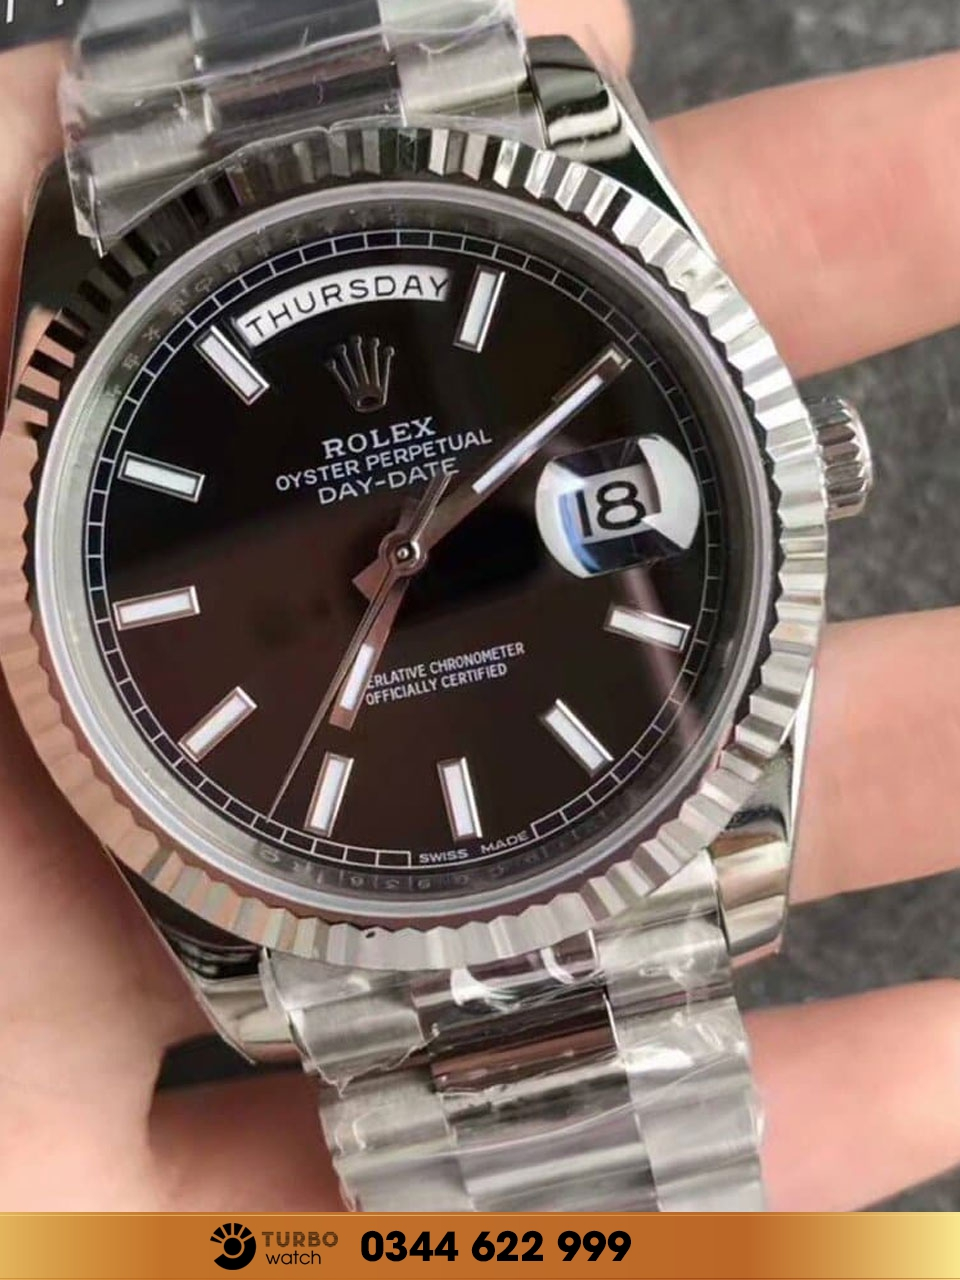 Rolex Day-Date 36 White Gold Black fake 1-1 siêu cấp